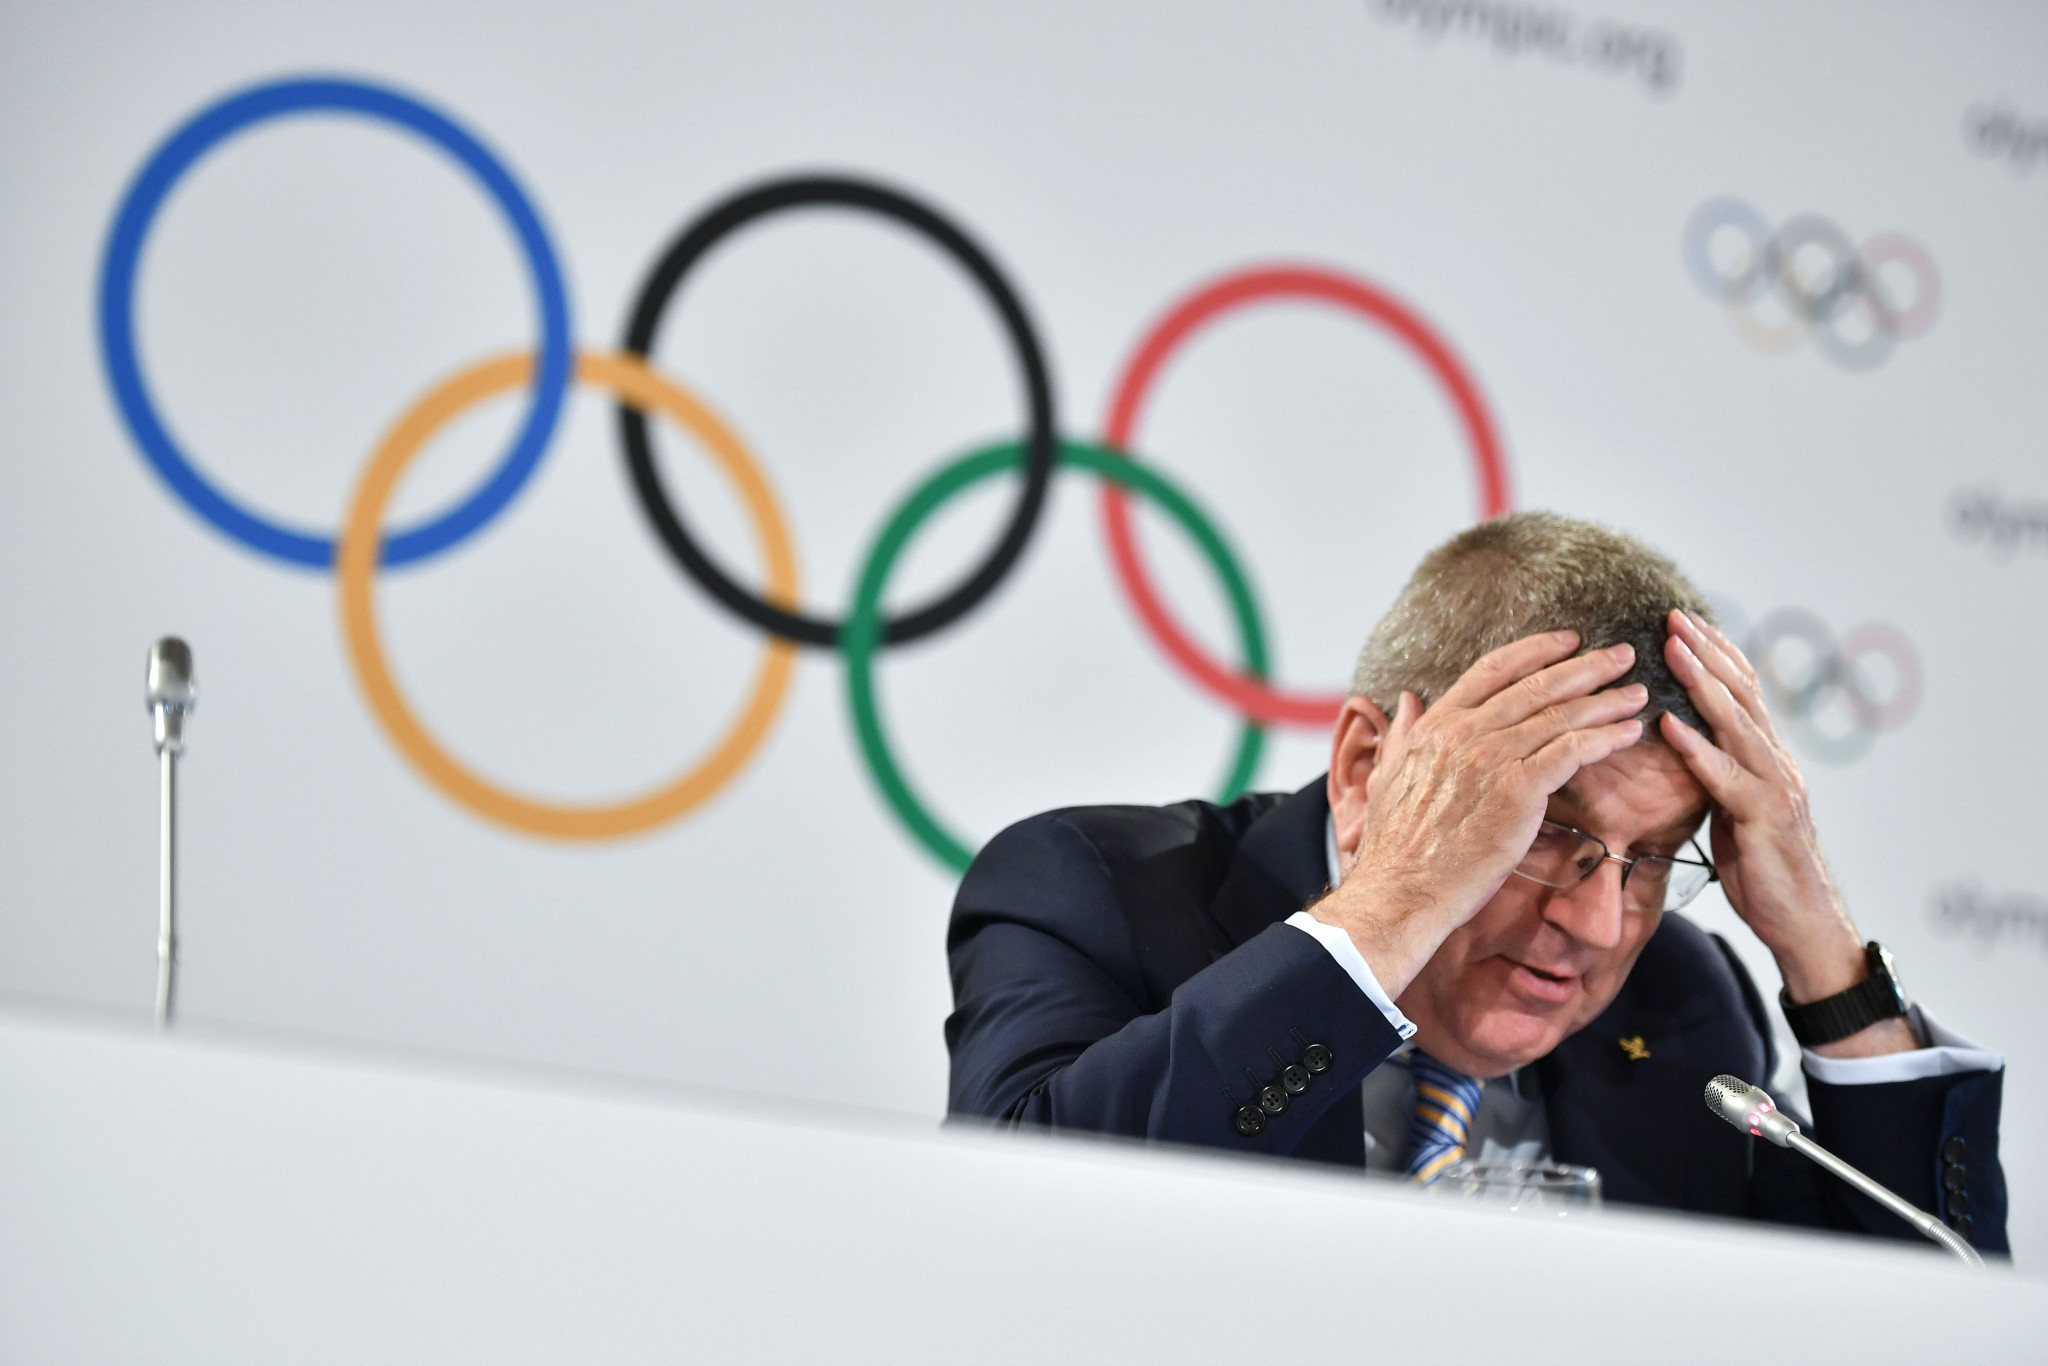 Boxing and weightlifting have provided a headache for the IOC in recent years ©Getty Images